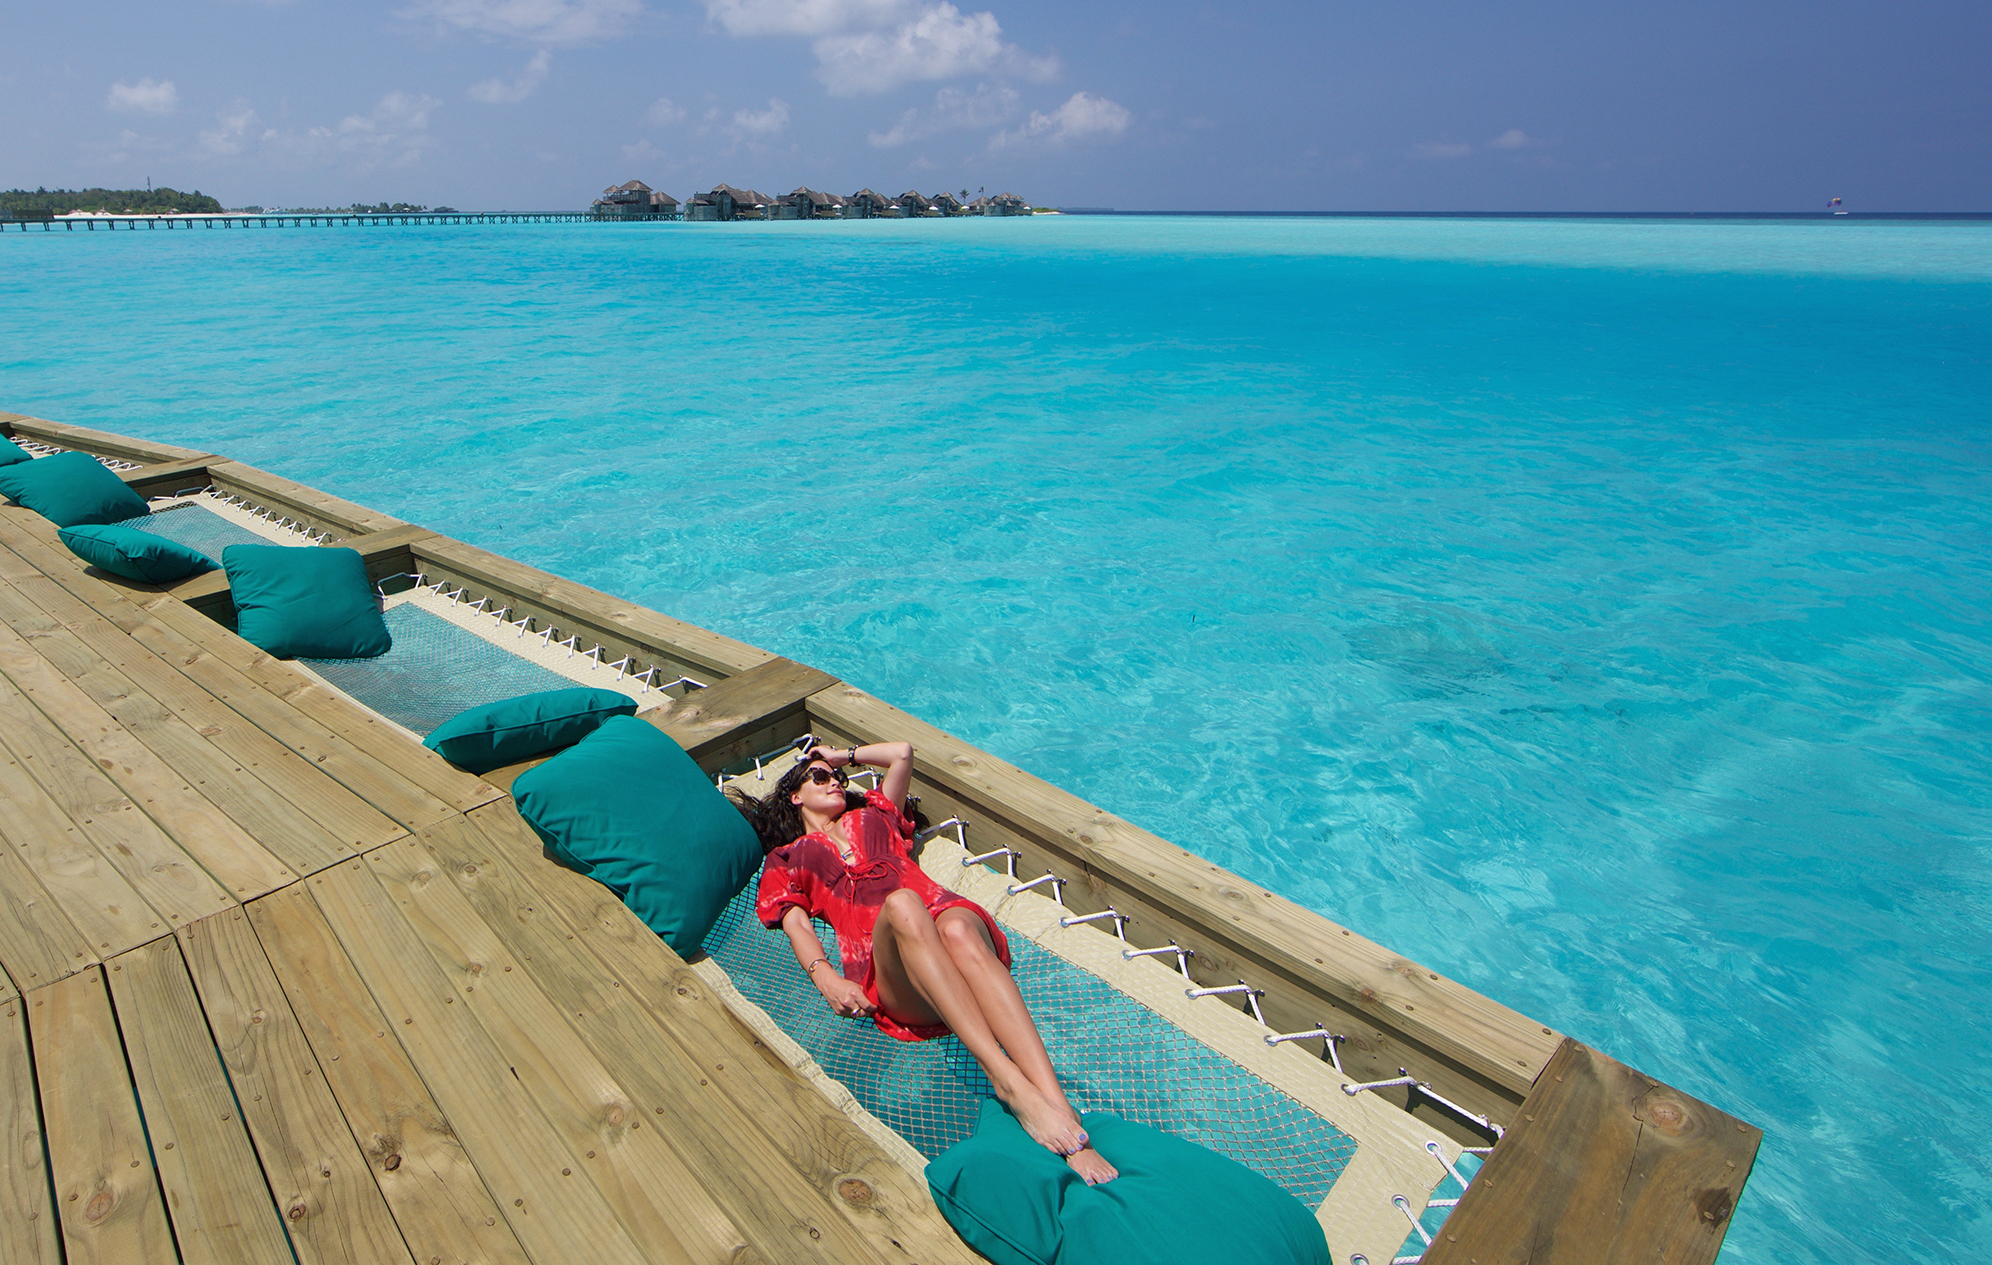 private island resorts, Gili Lankanfushi